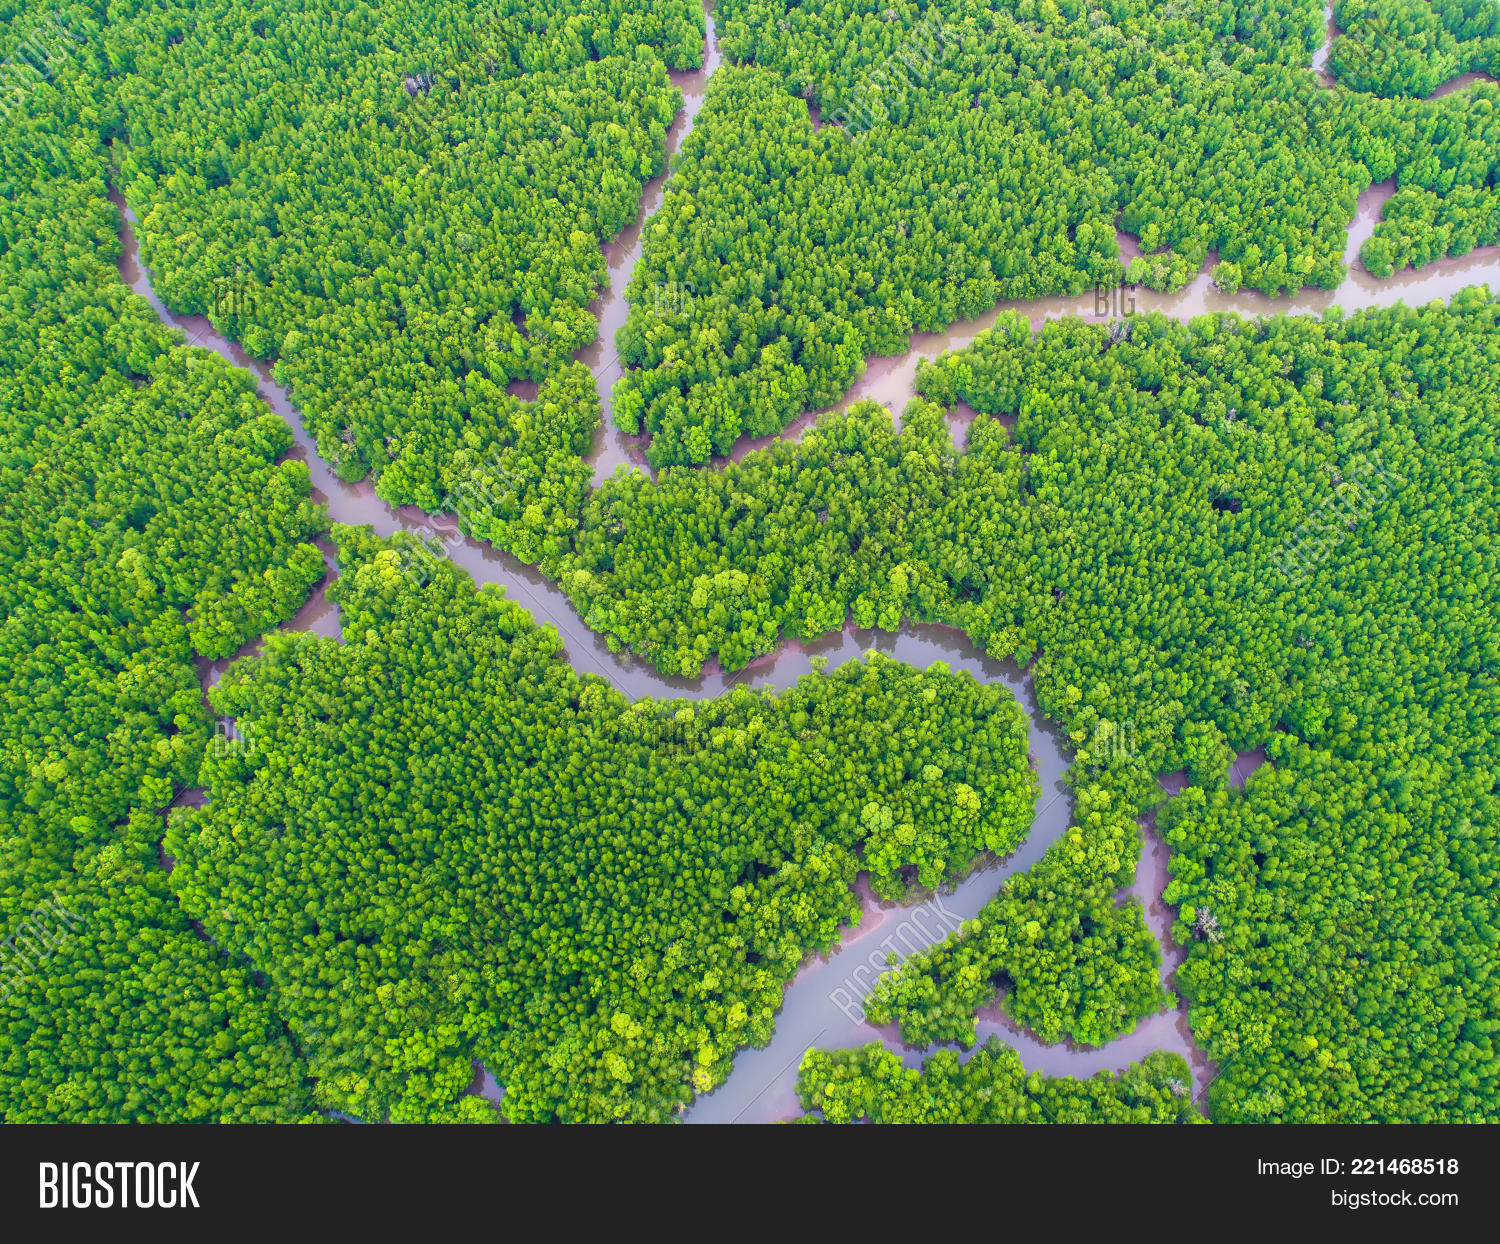 Top View Tree Beautiful Background Aerial Mangrove Forest Natural Grass Texture